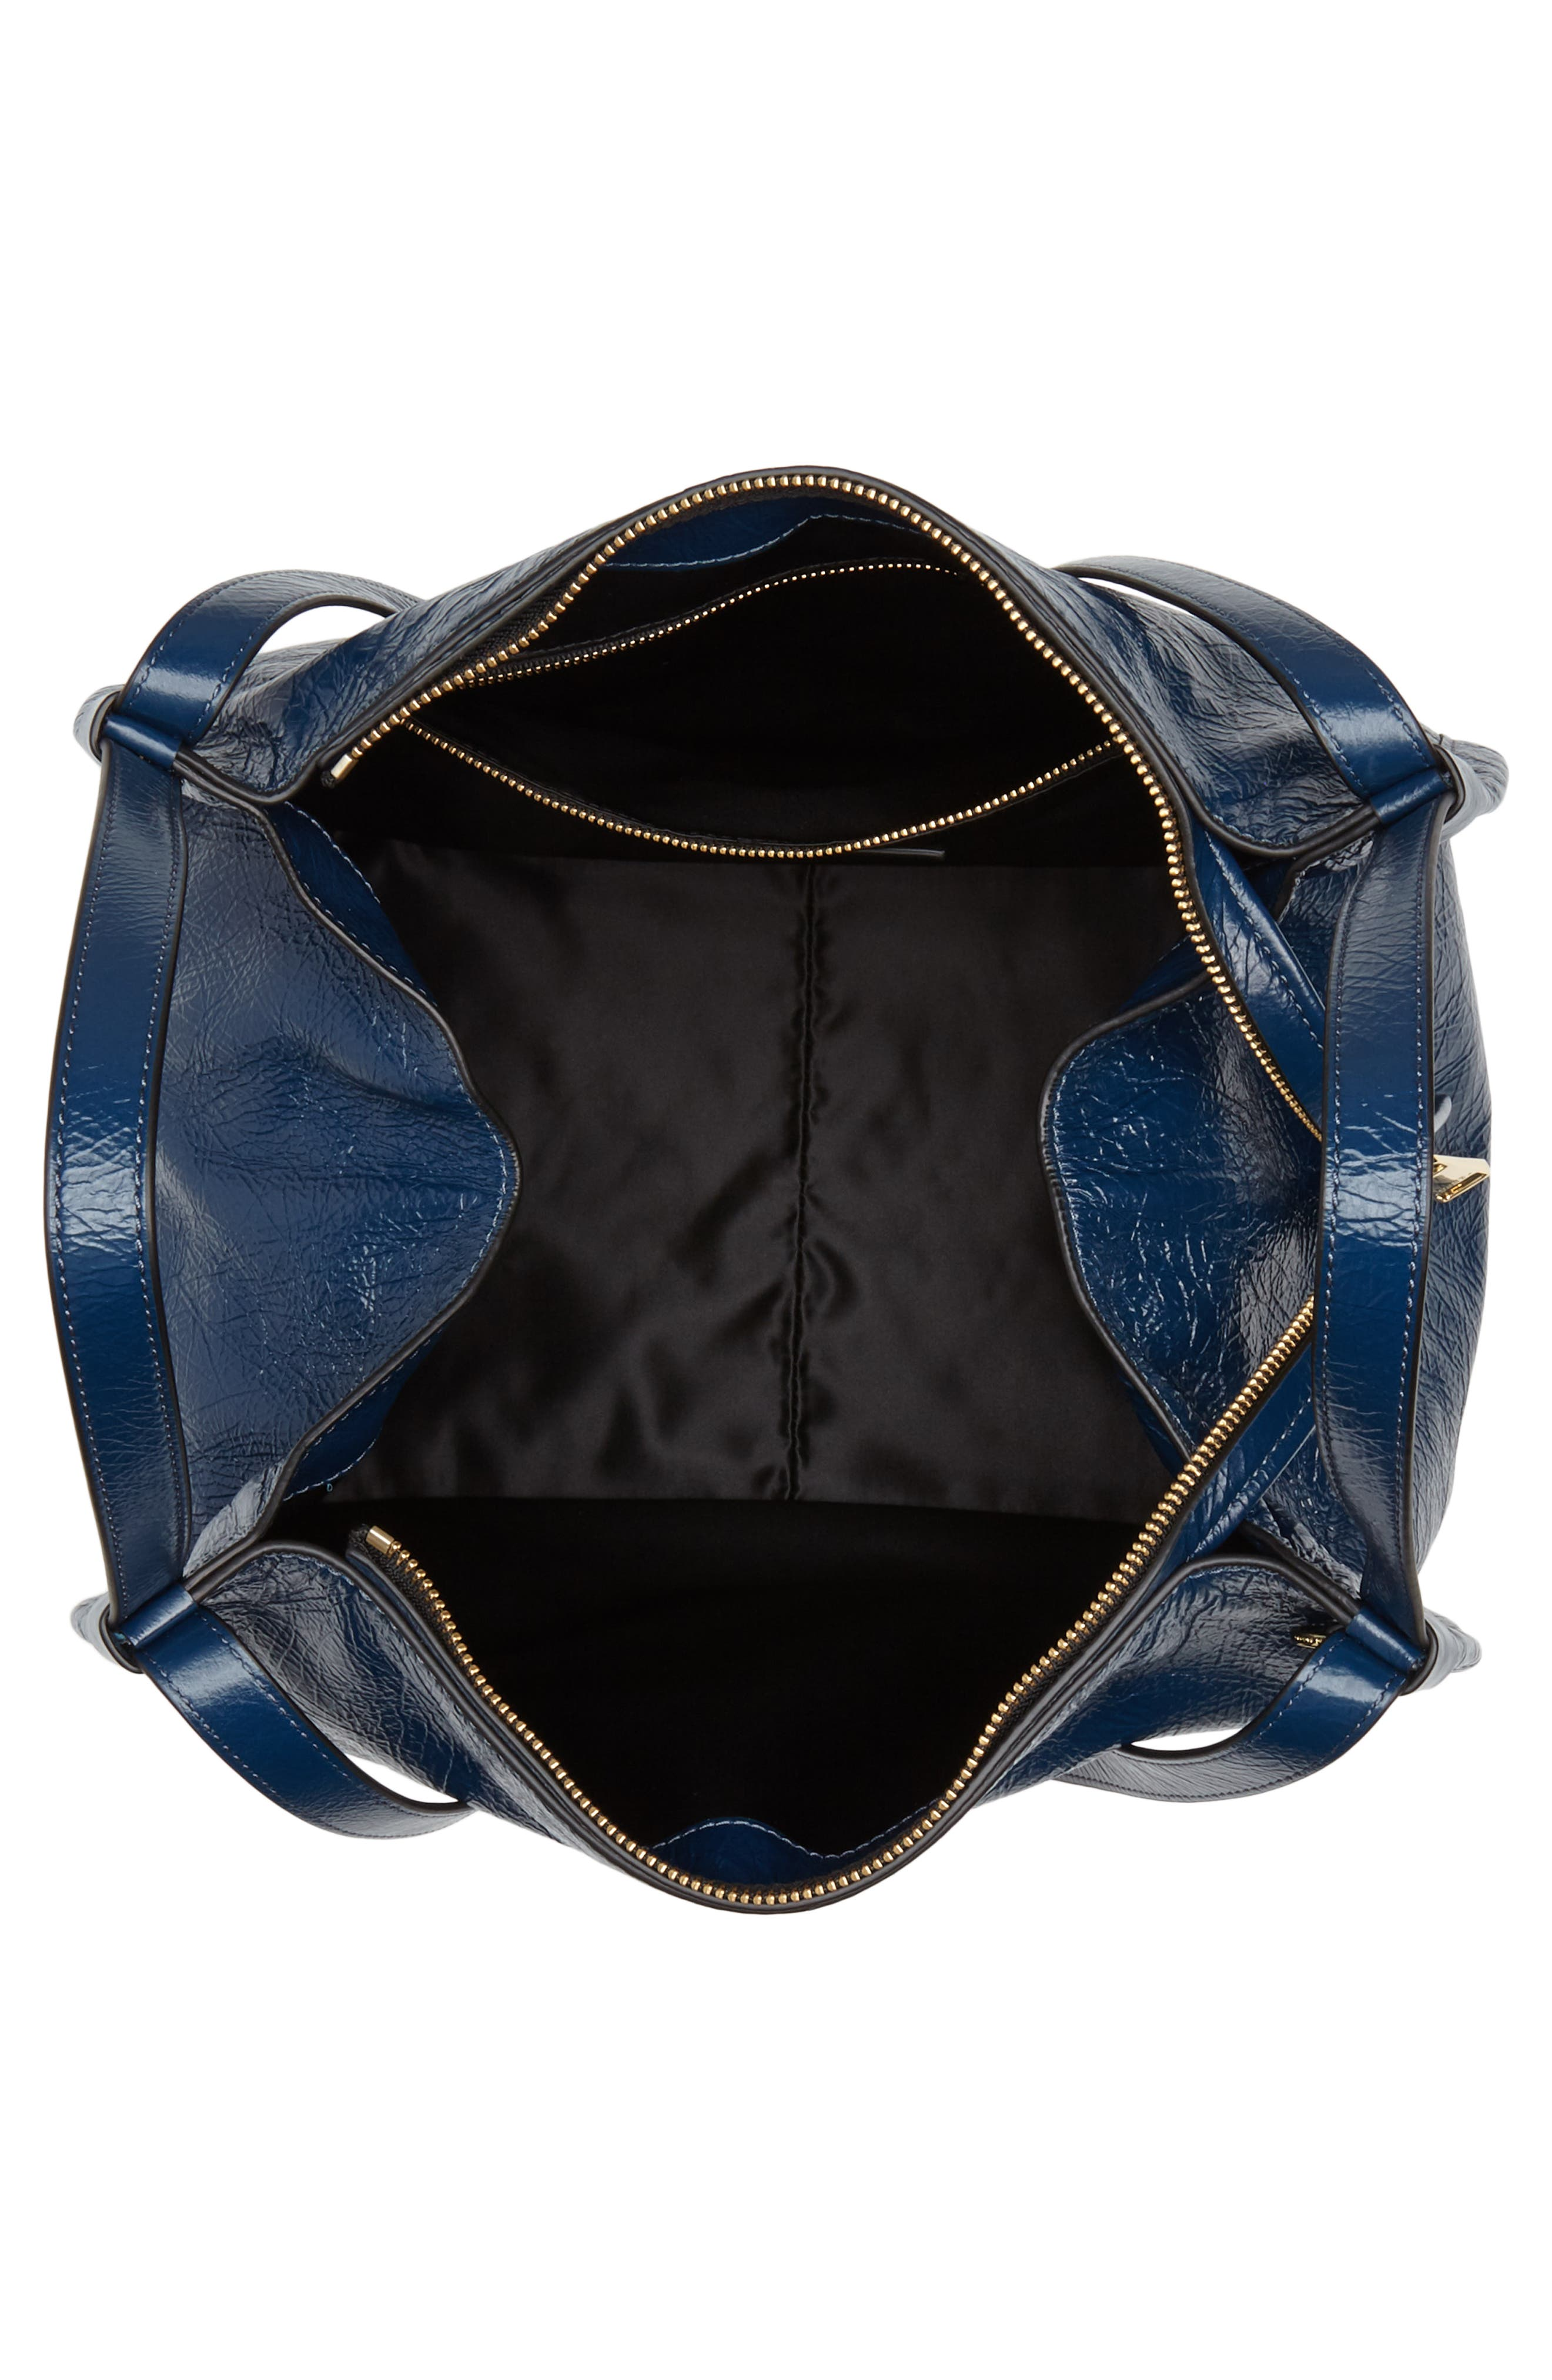 Leather Sport Tote,                             Alternate thumbnail 6, color,                             Island Blue